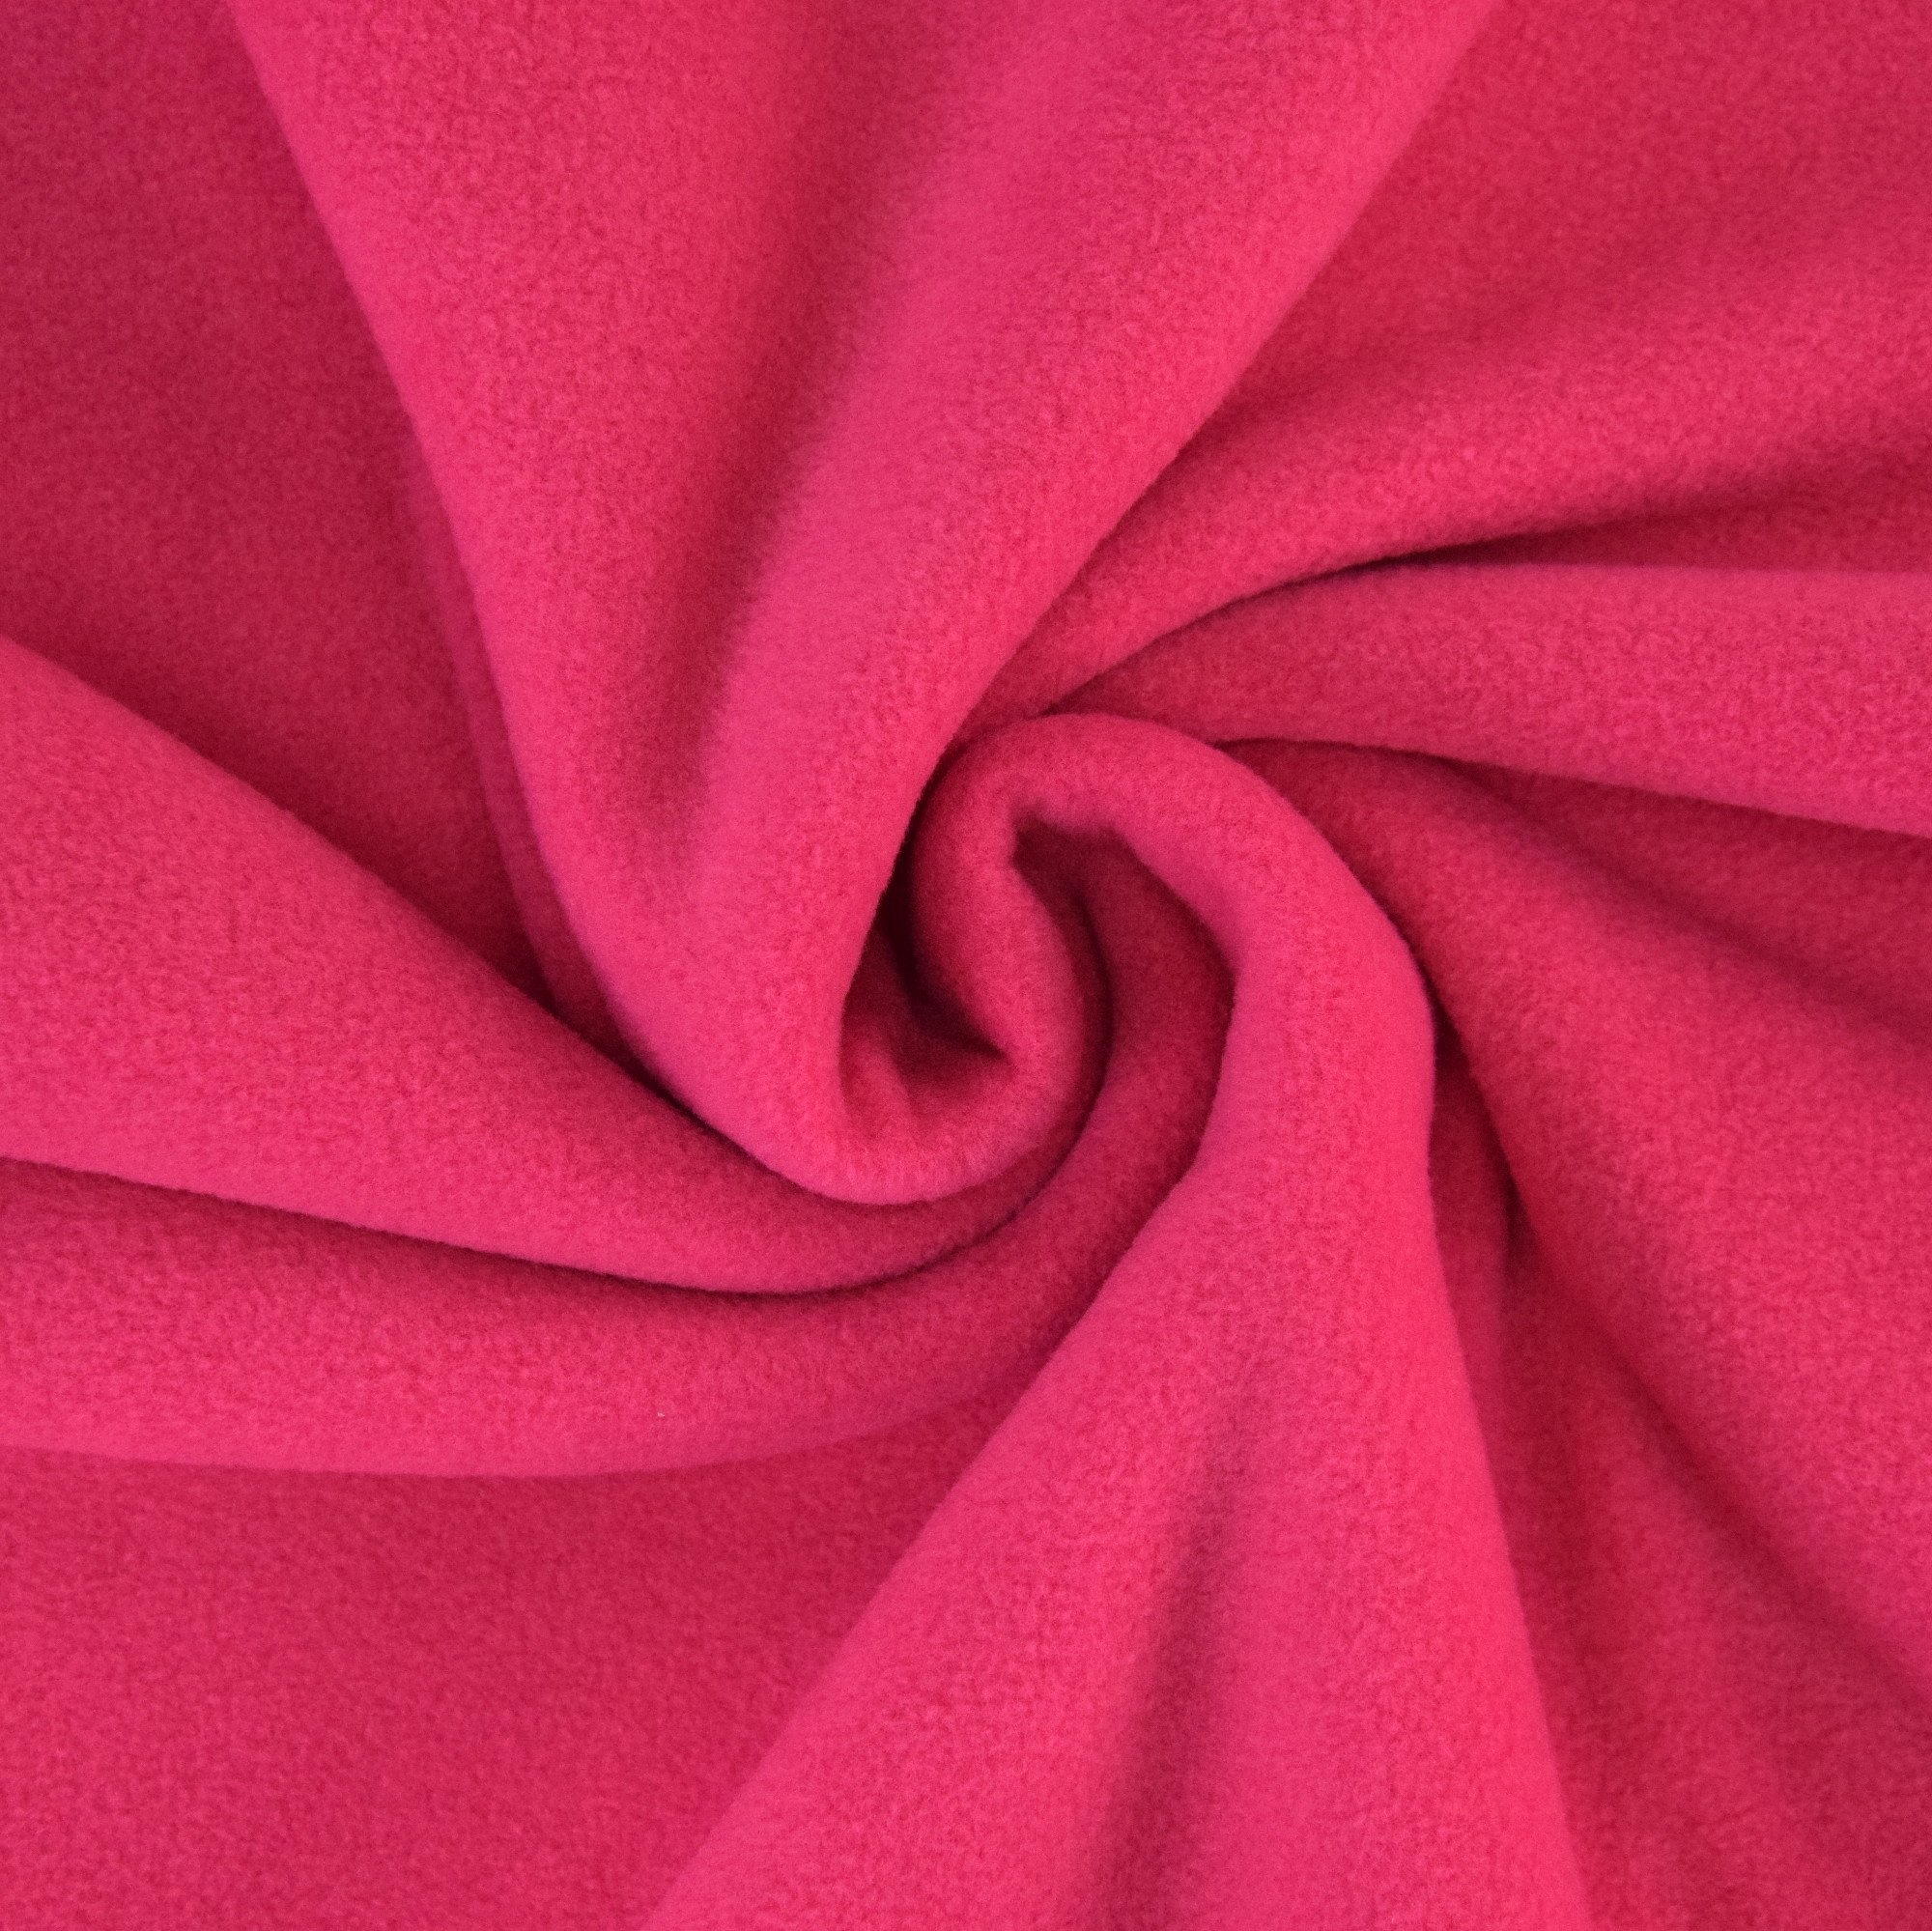 Fleece antipilling pink 1 | stoffen-hemmers.be